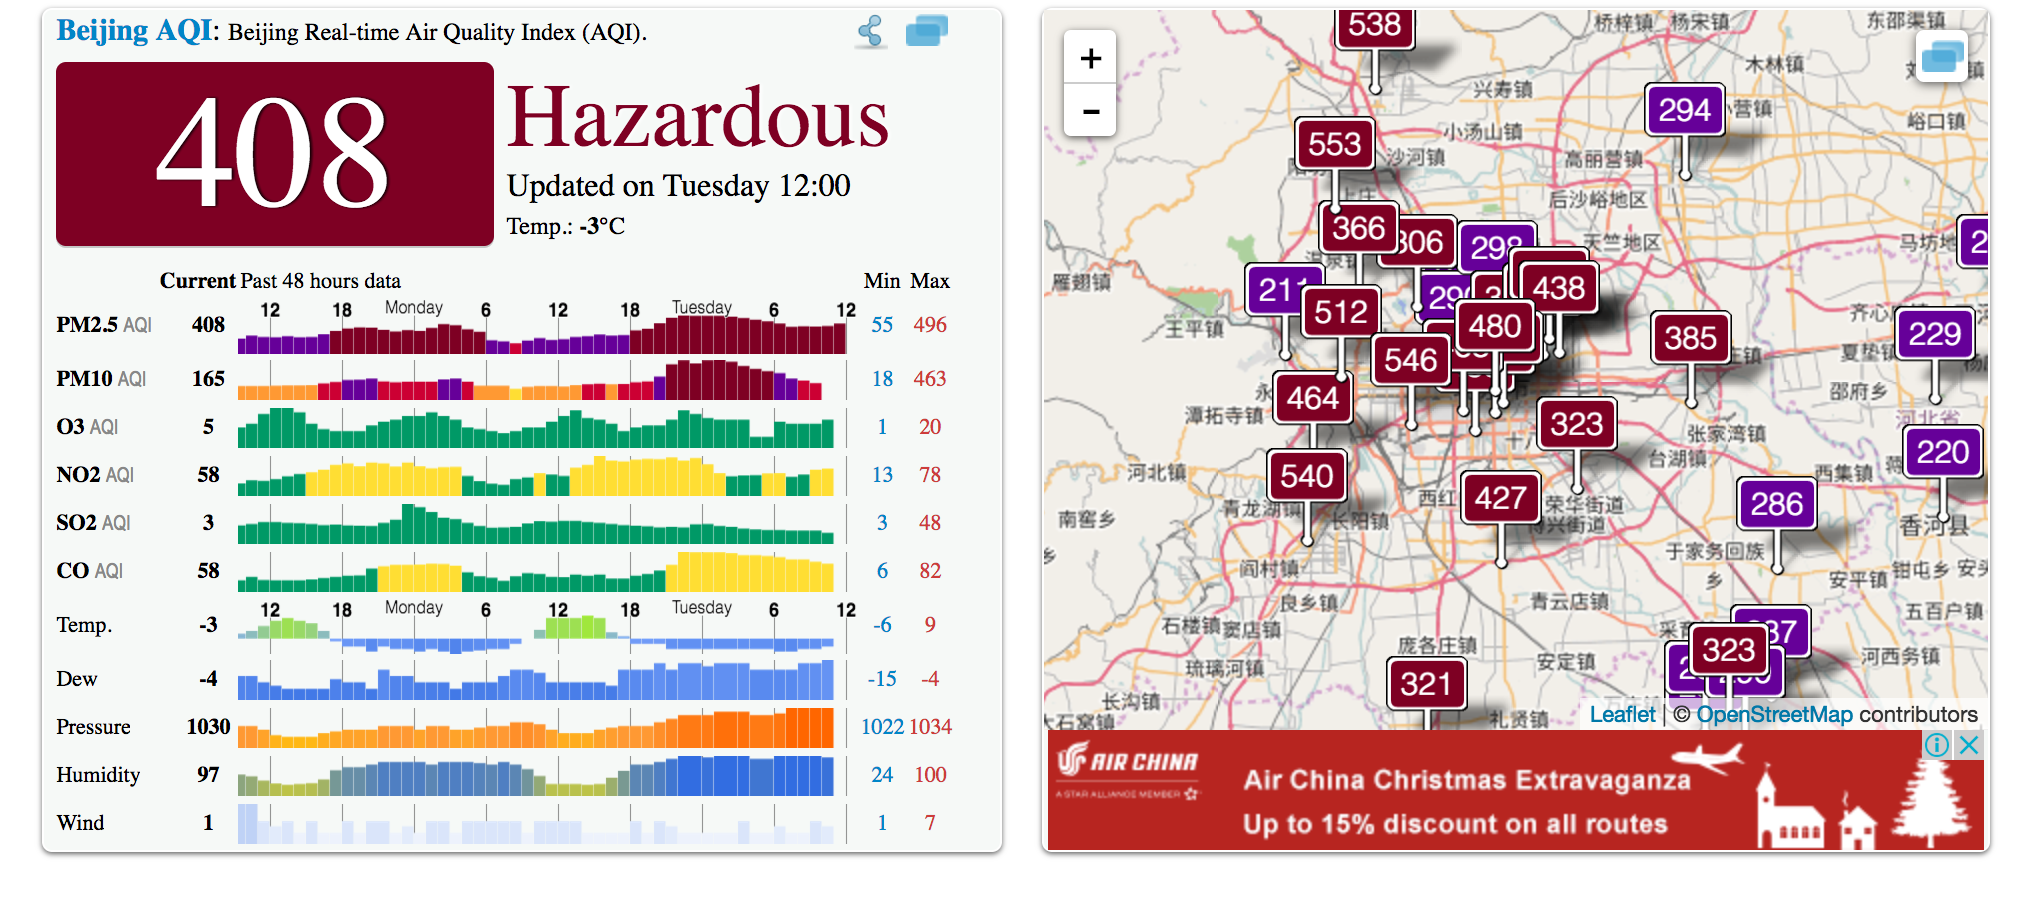 Beijing smog is so serious that the PM 2.5 has been maintaining in a hazardous level for days.